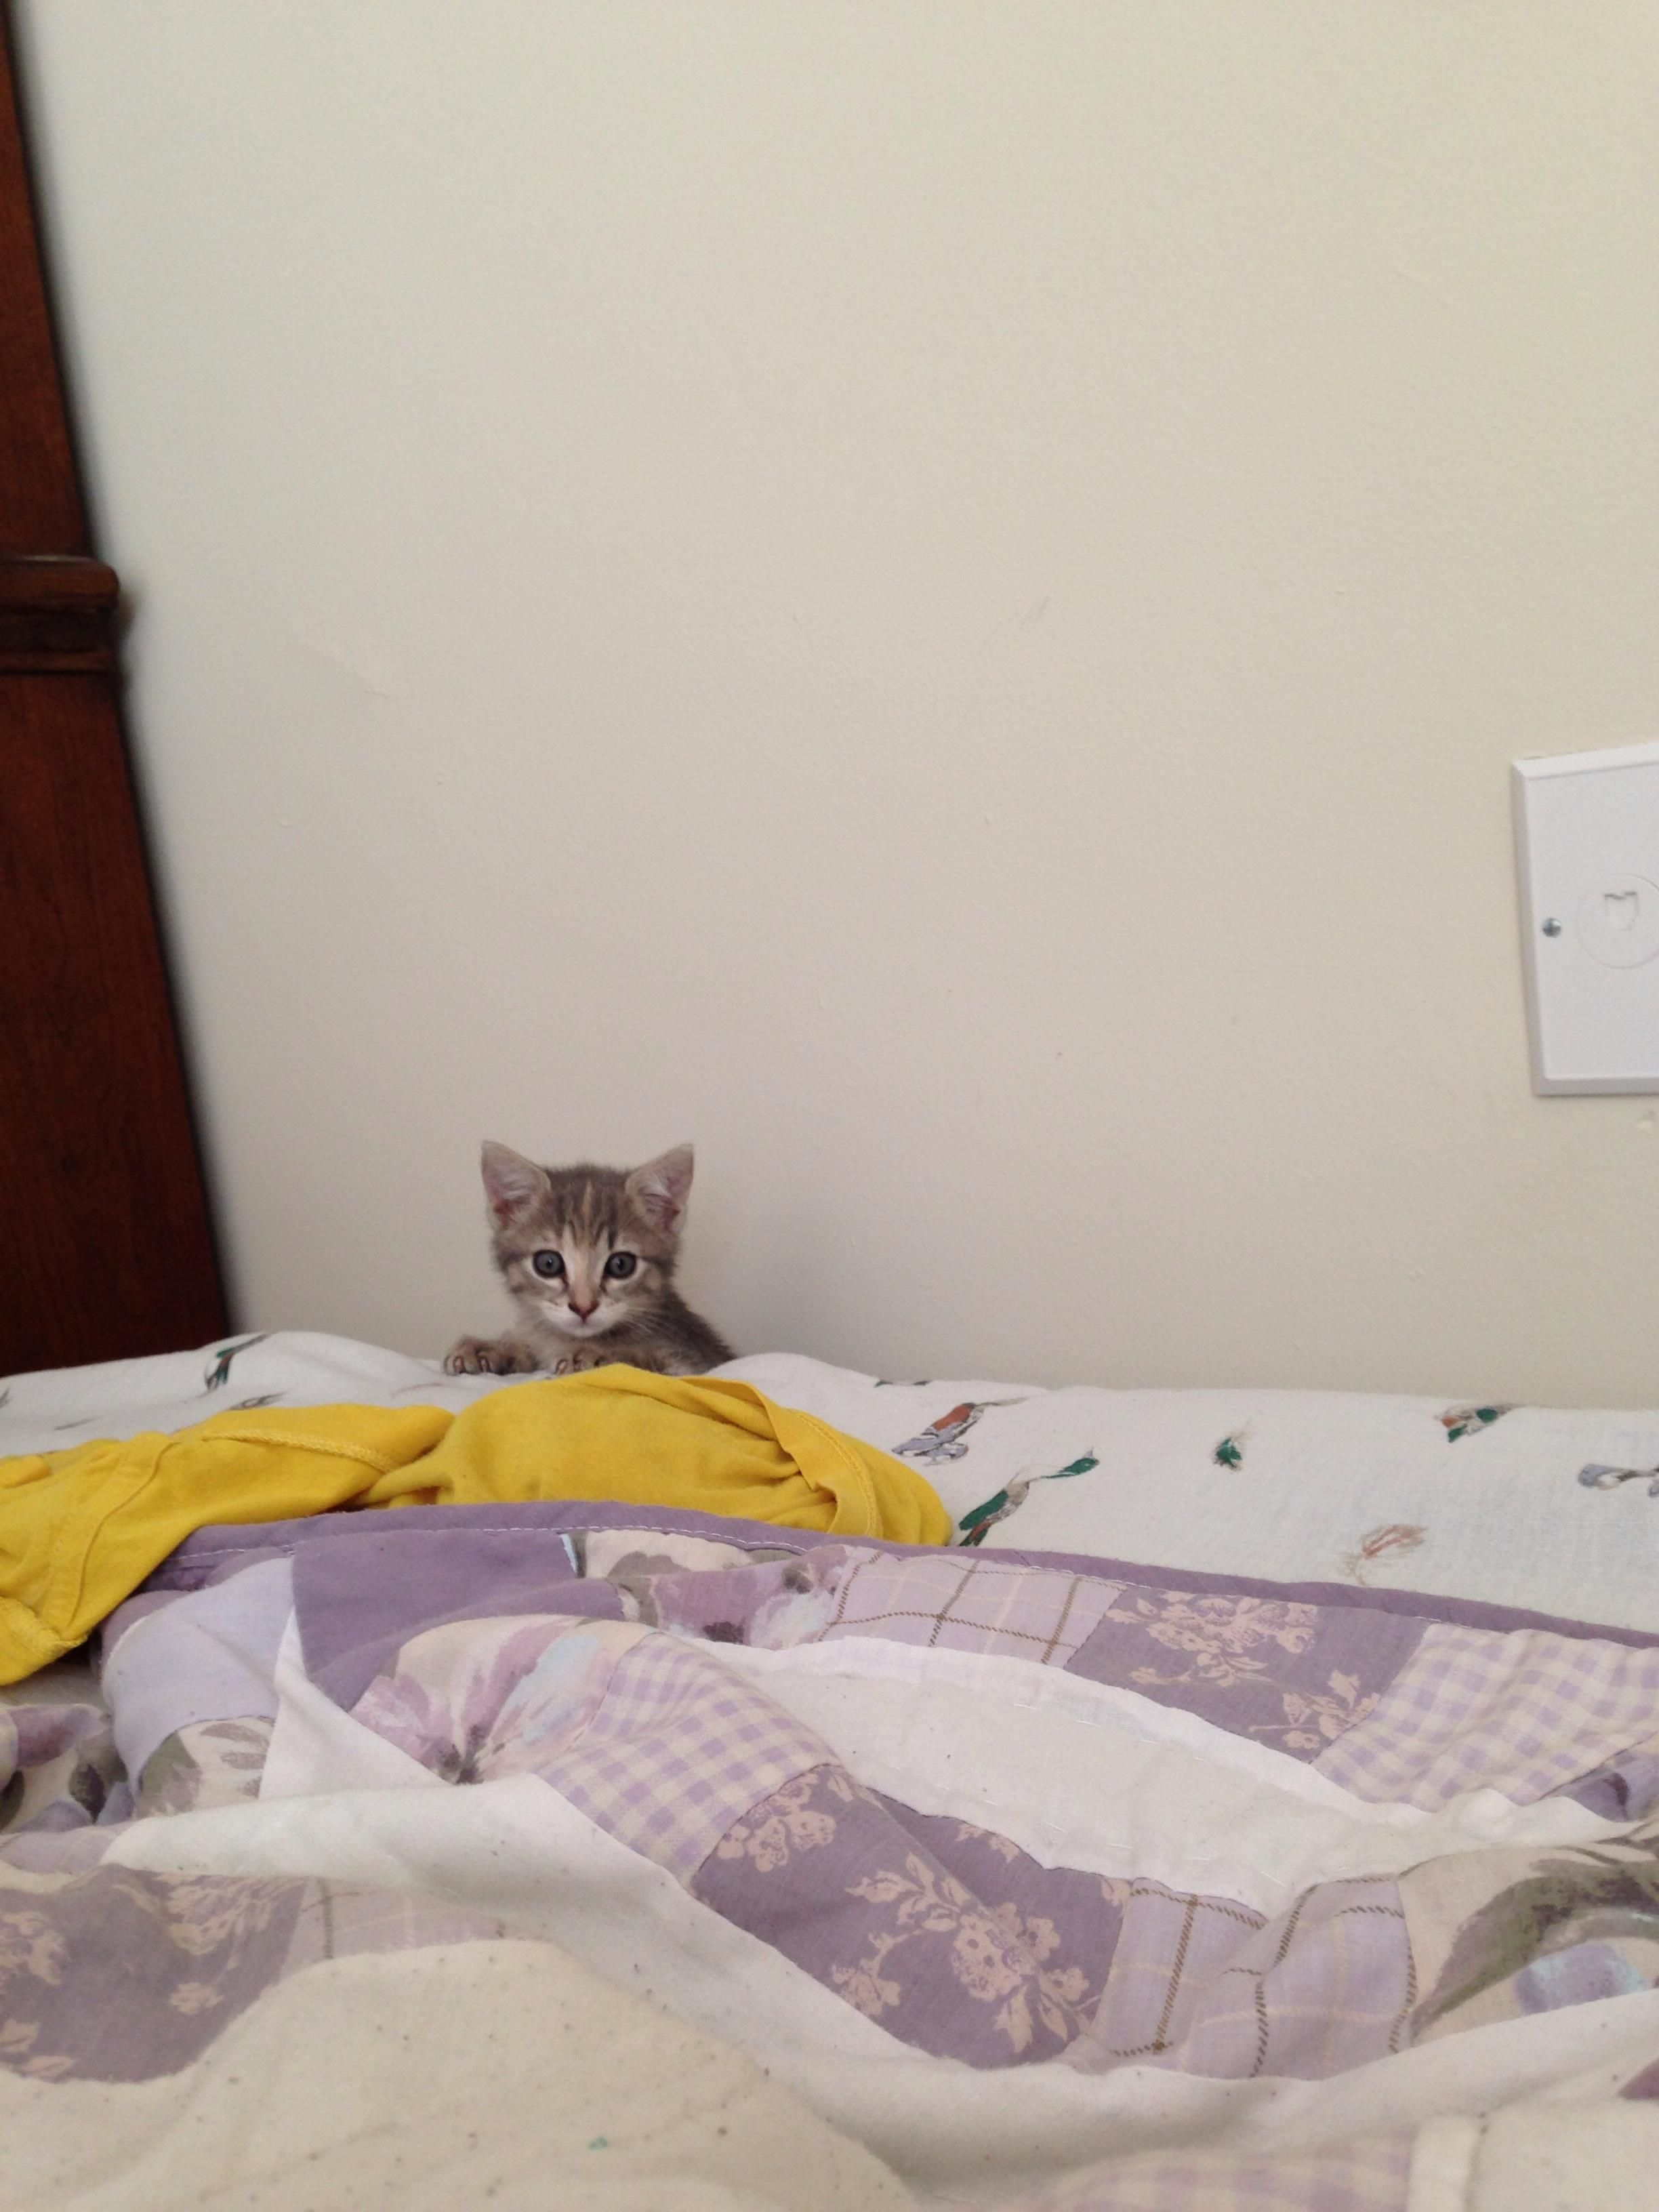 My New Kitten Spent Most Of Her First Day Home Hiding Behind The Dresser Or Bed But Would Occasionally Peek Out Kitten Cute Cats Kittens Cutest